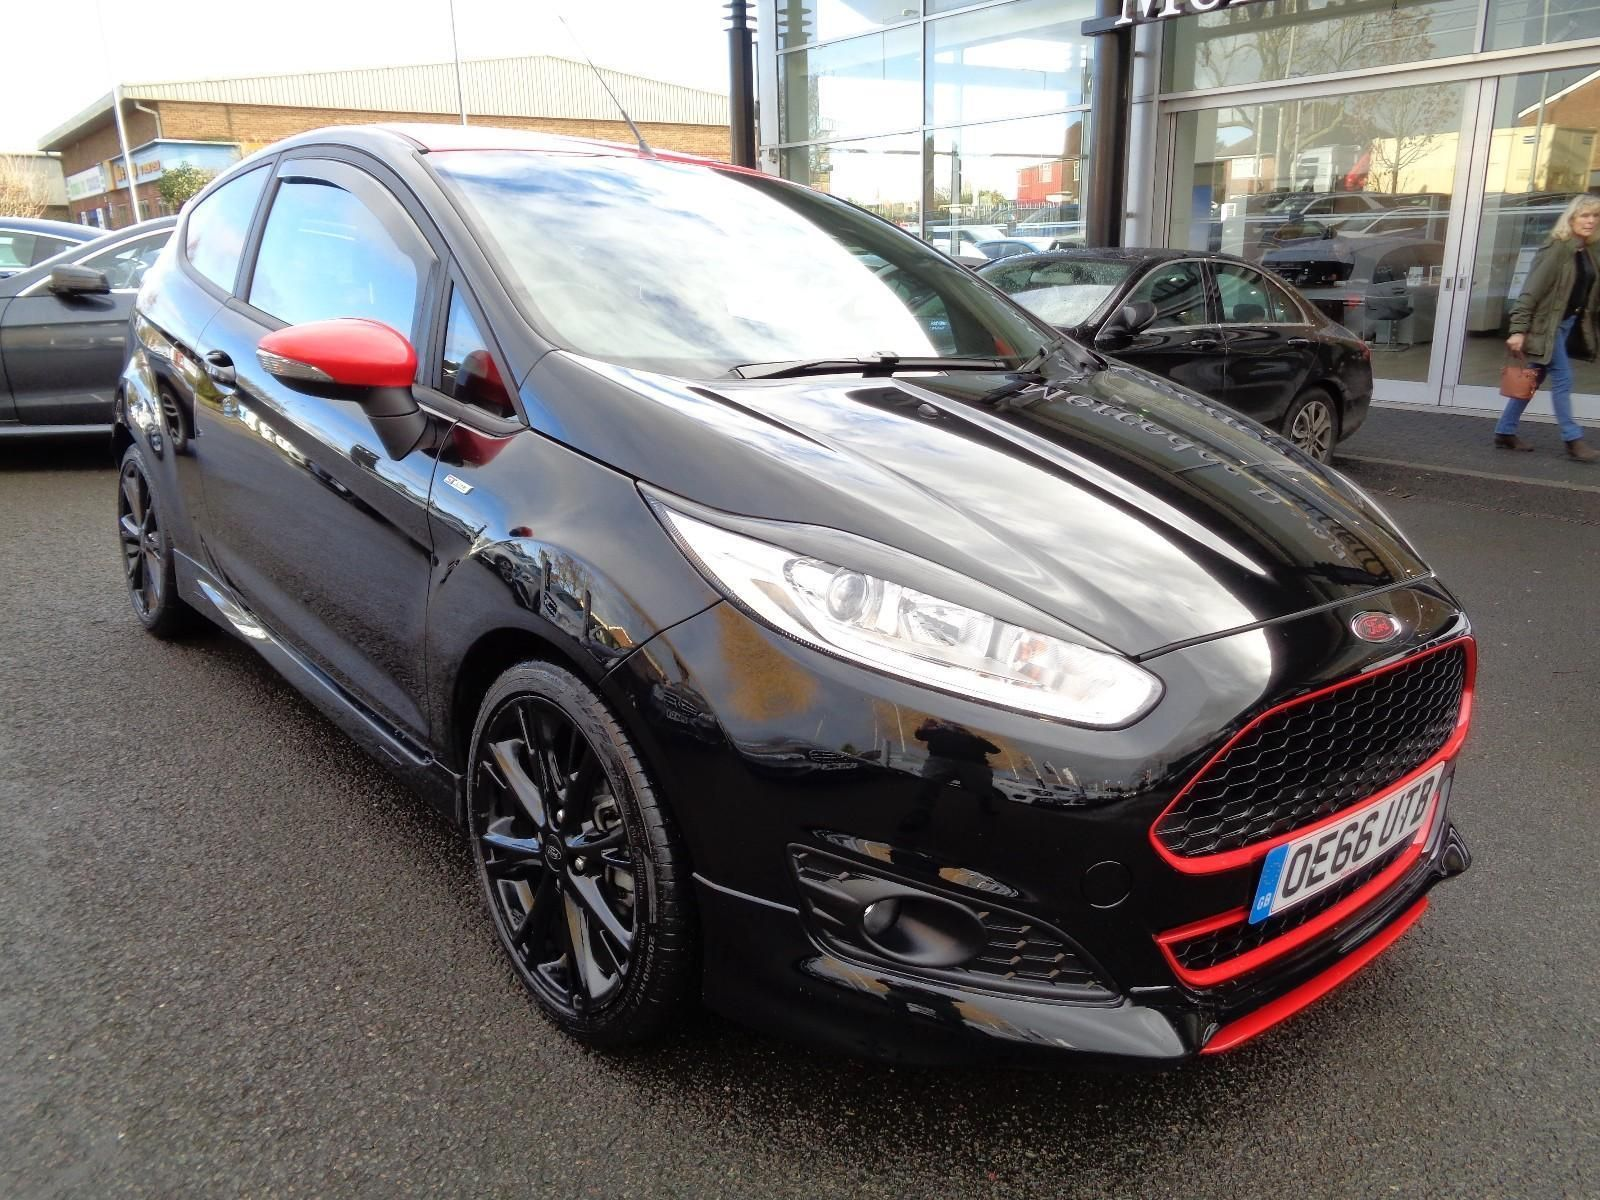 Check Out This Fast Ford Ford Fiesta 1 0t 140ps Ecoboost S S St Line Black Edition Black Edition Ford Fiesta Ford